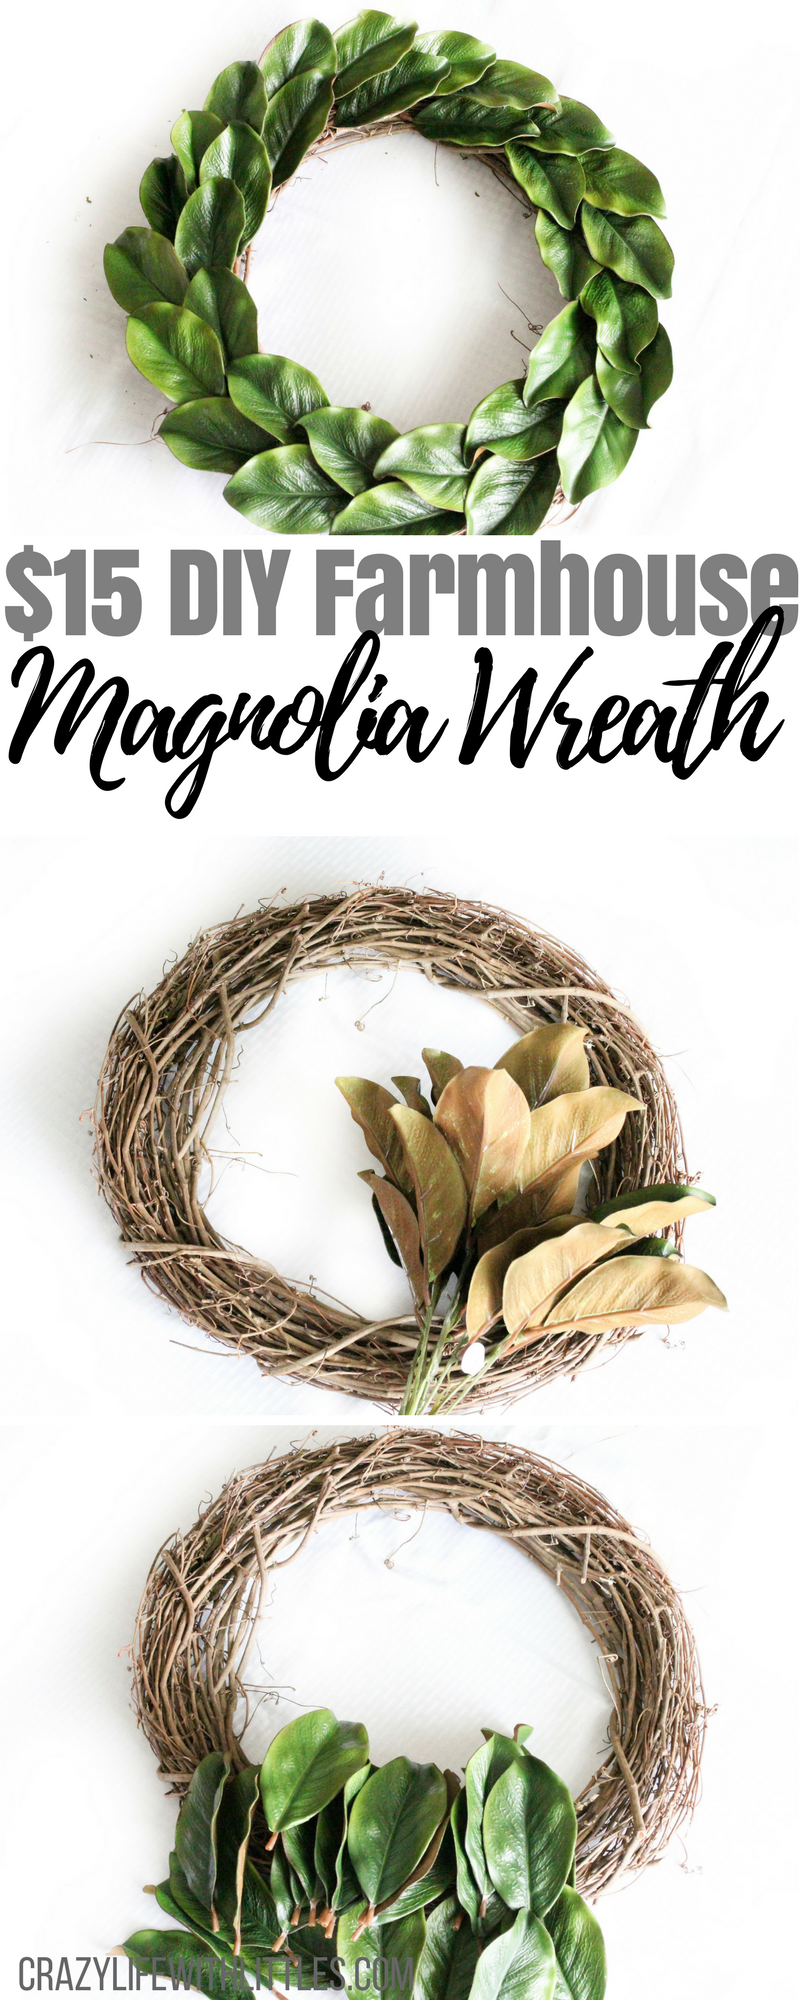 #farmhousedecor #magnoliawreath $15 Farmhouse DIY Magnolia Wreath, farmhouse decor, modern farmhouse, fixer upper, magnolia wreath hobby lobby